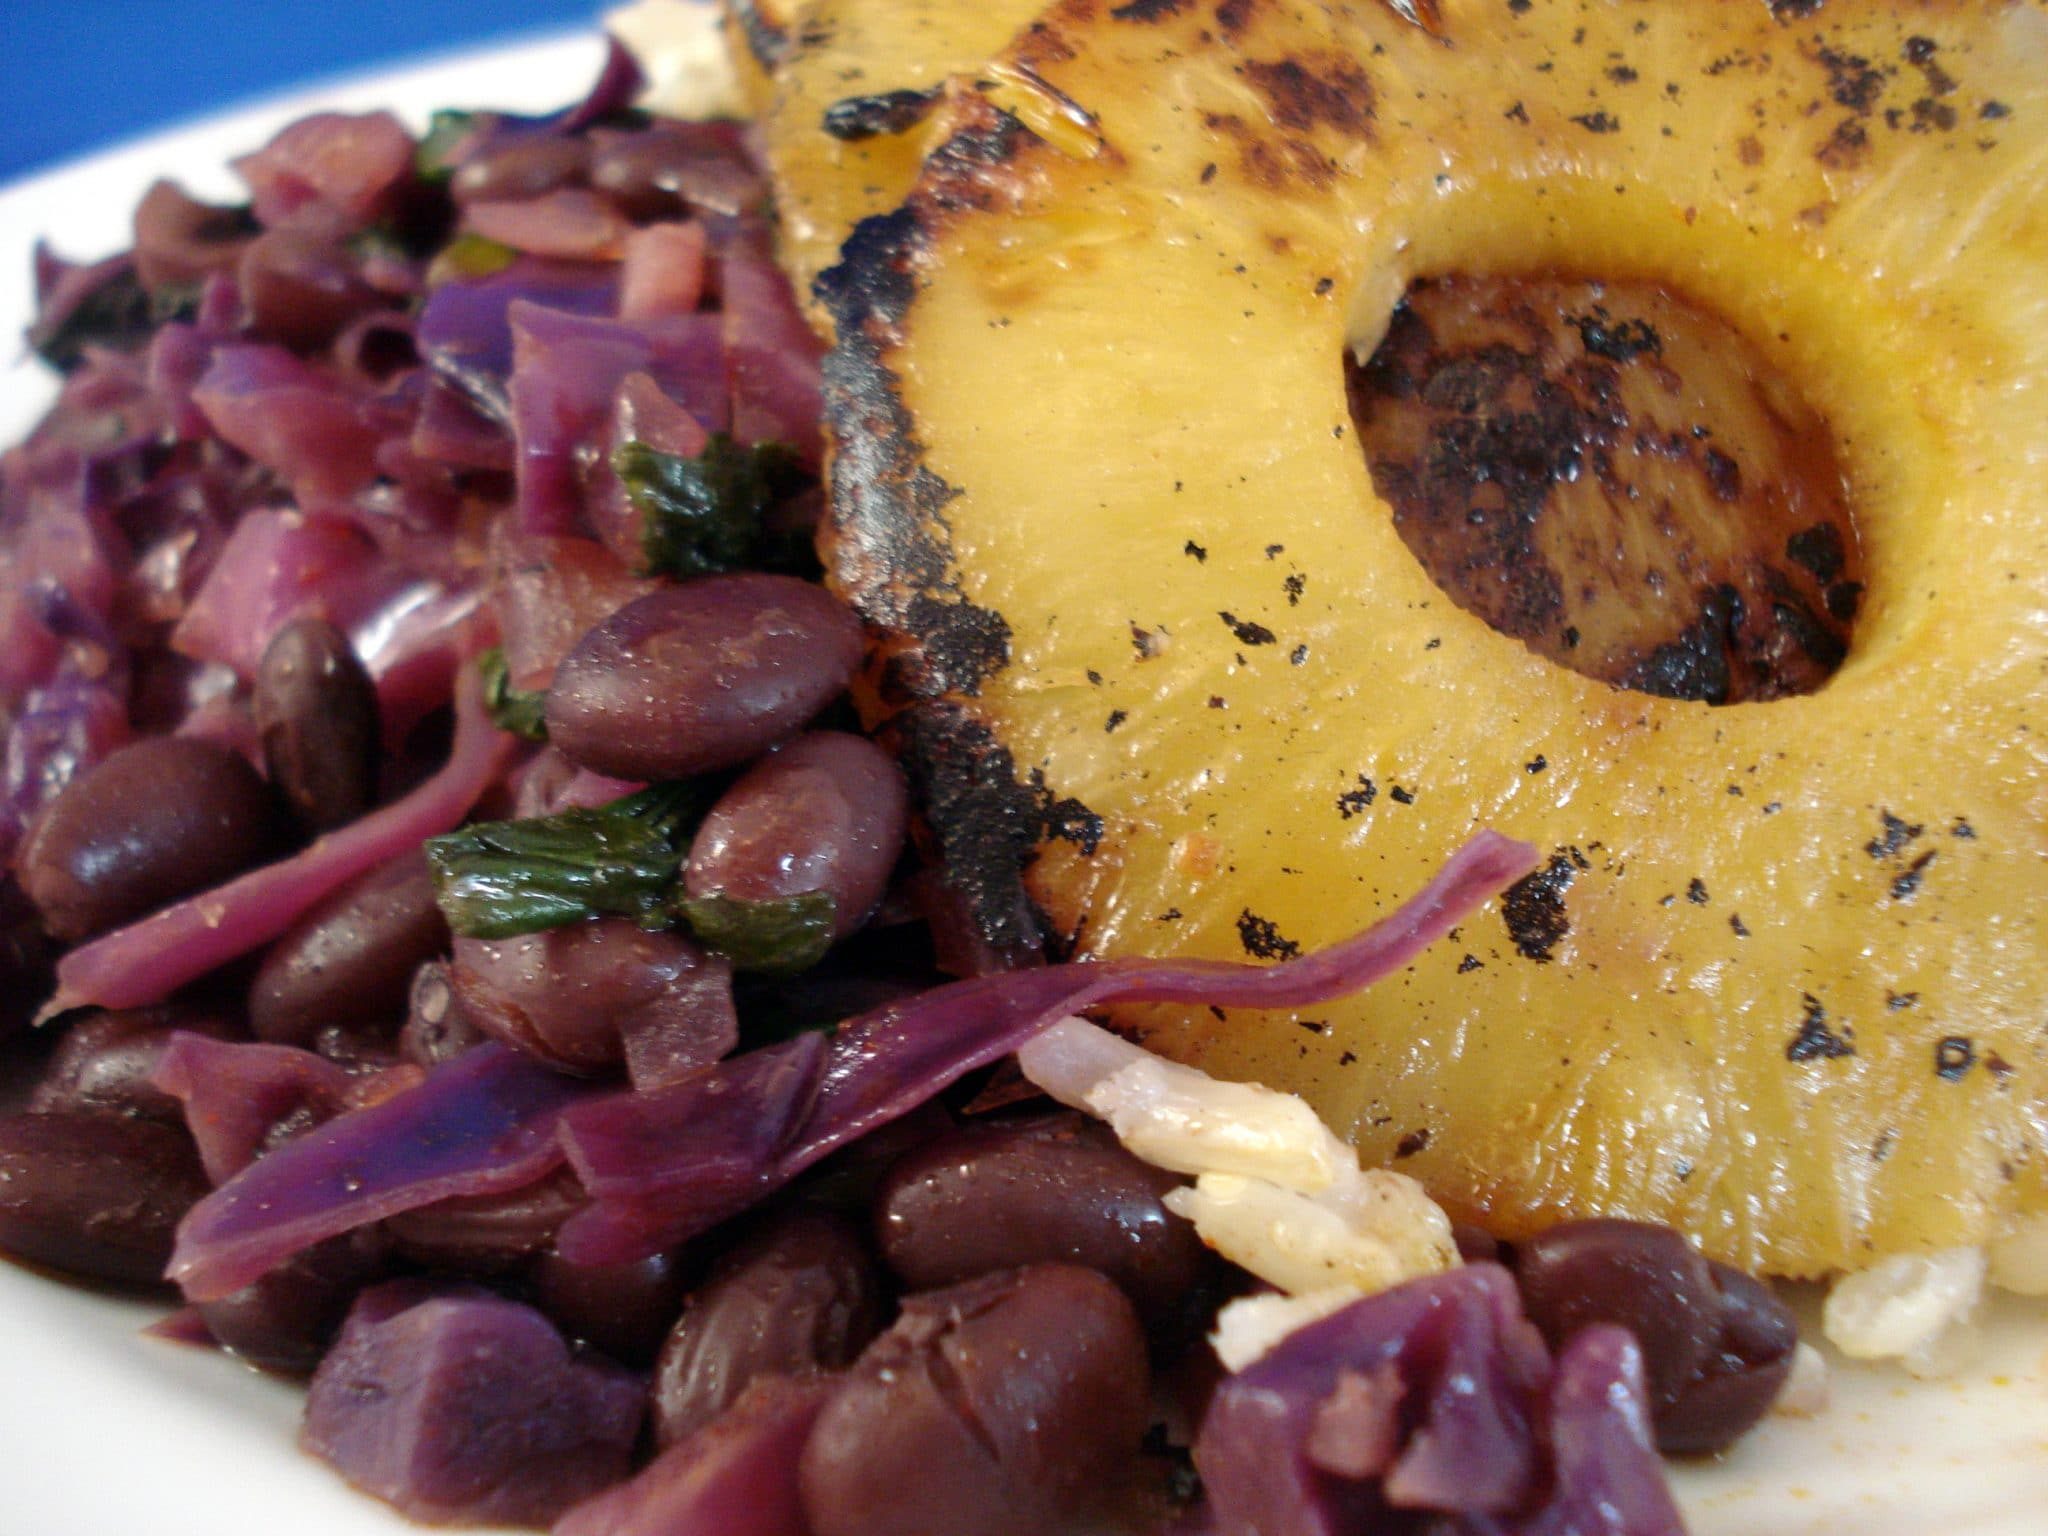 Grilled pineapple, black beans and rice